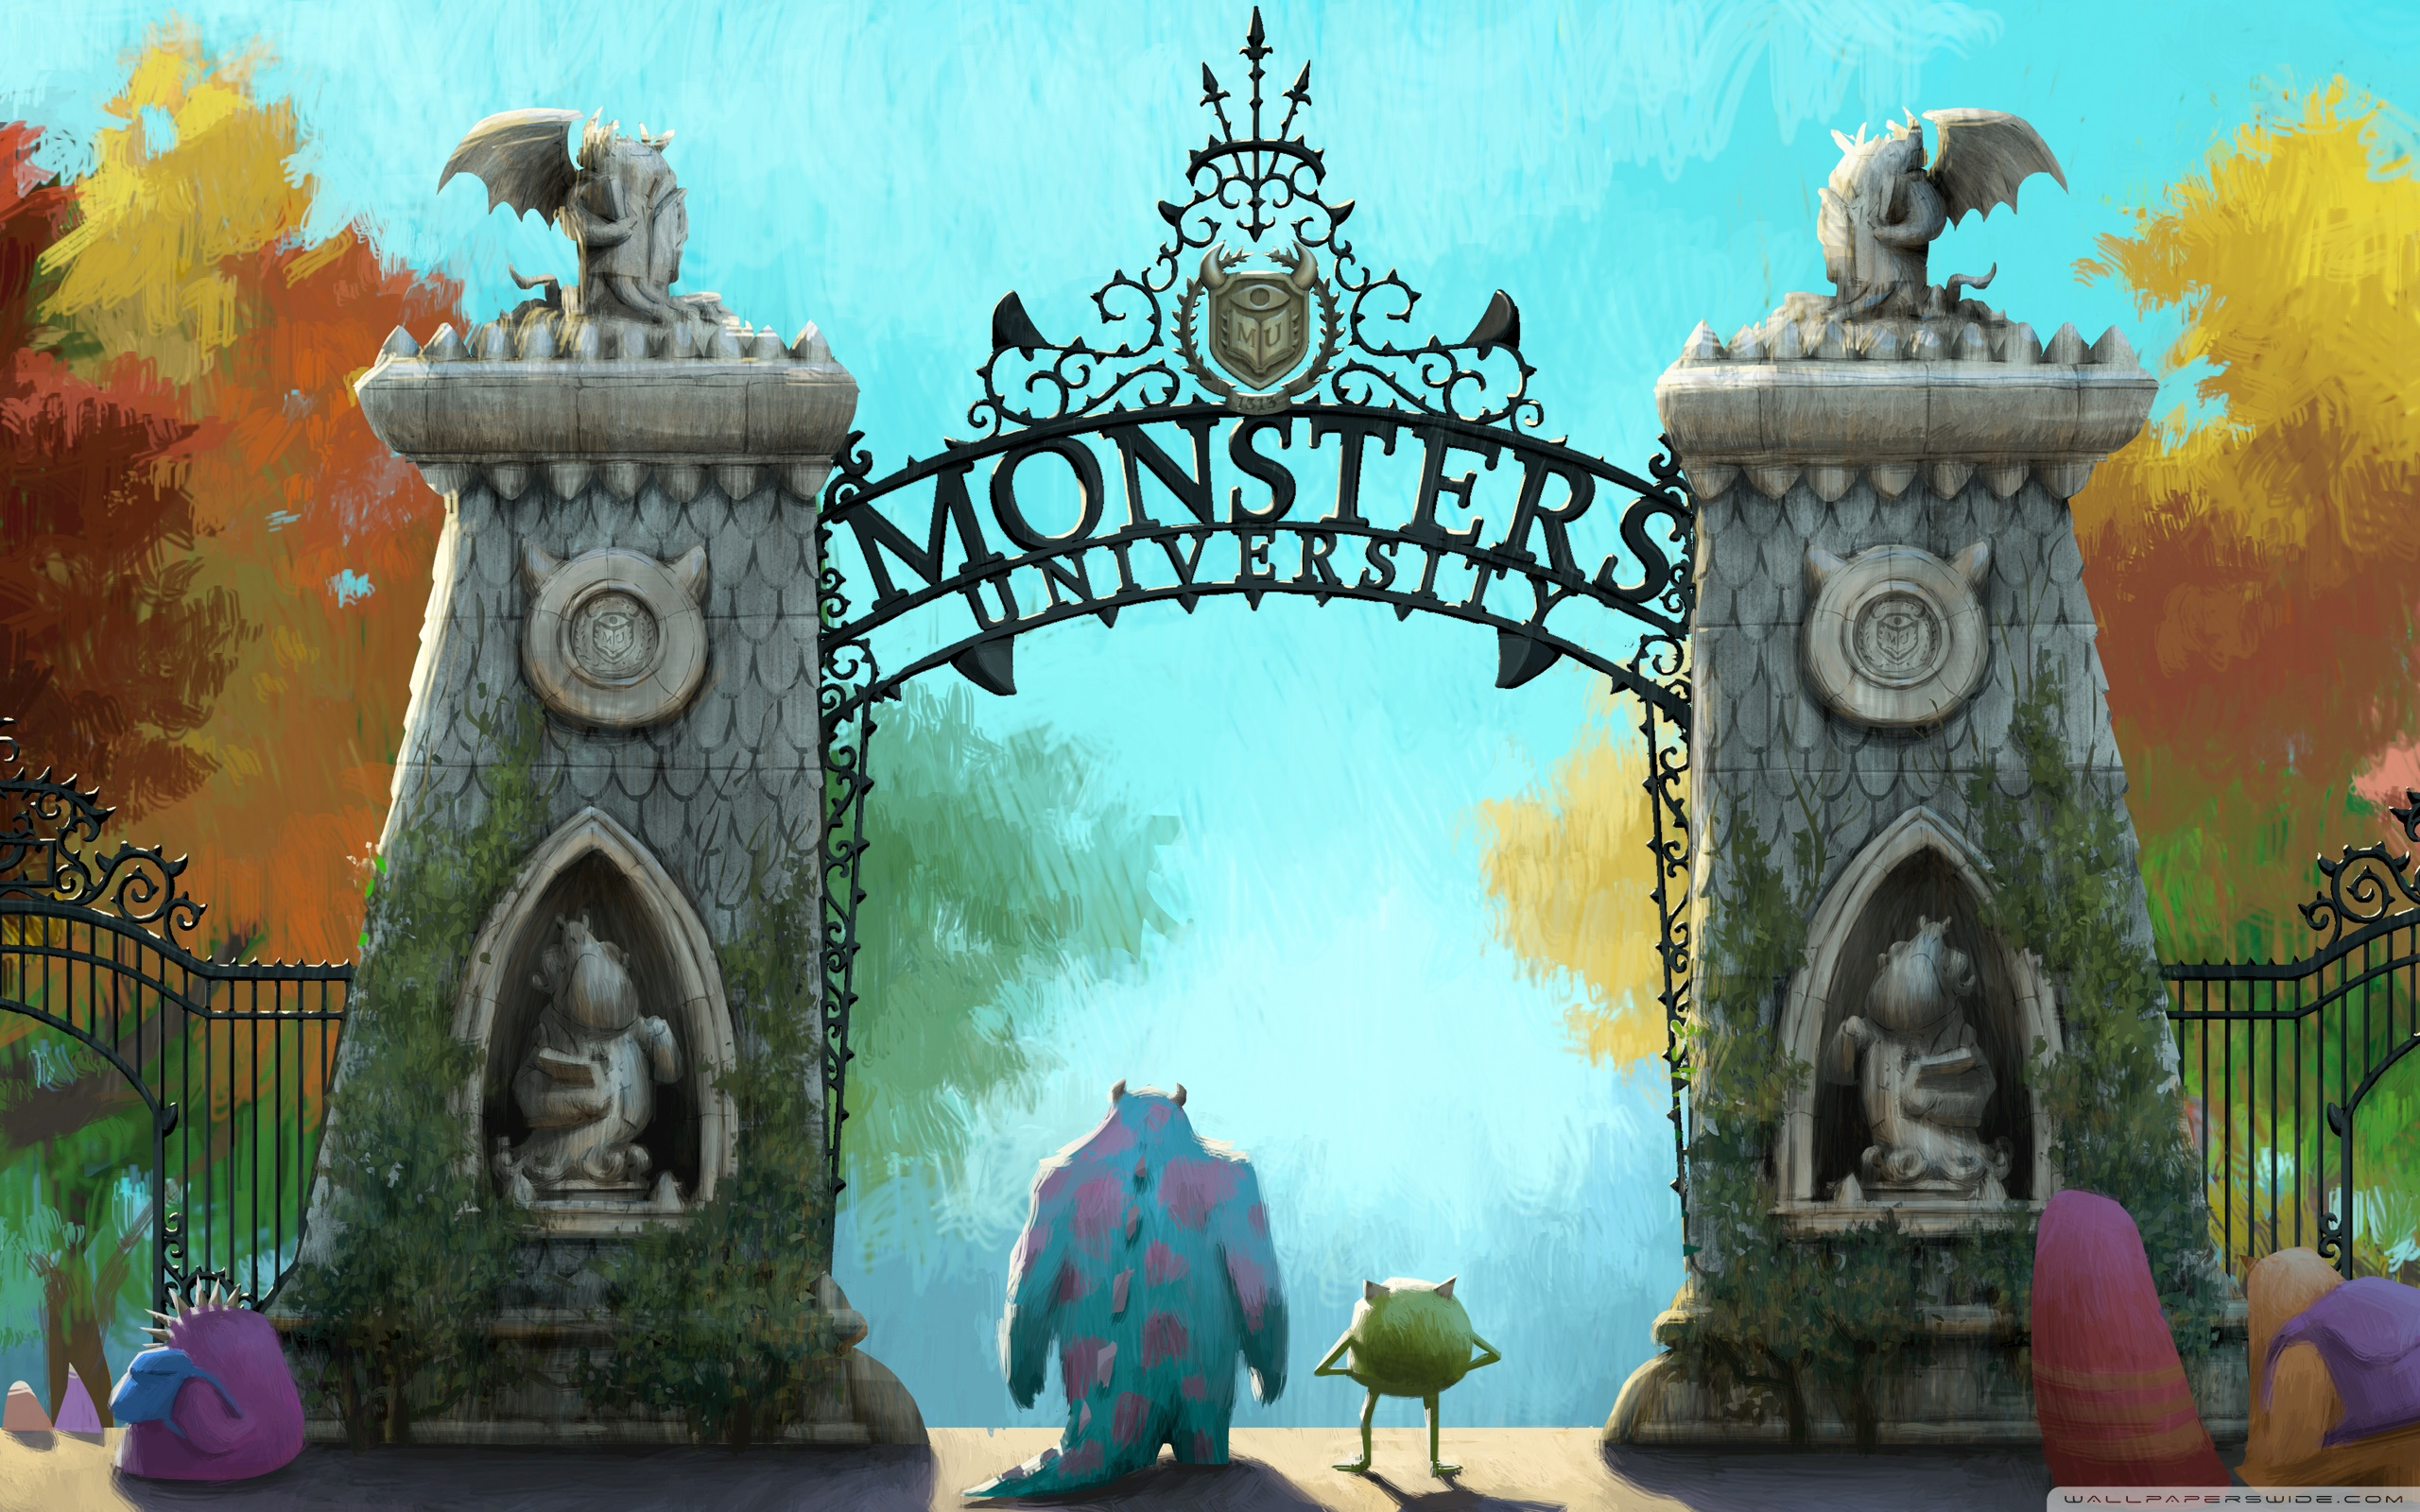 Monsters university 2013 4k hd desktop wallpaper for 4k ultra wide voltagebd Images